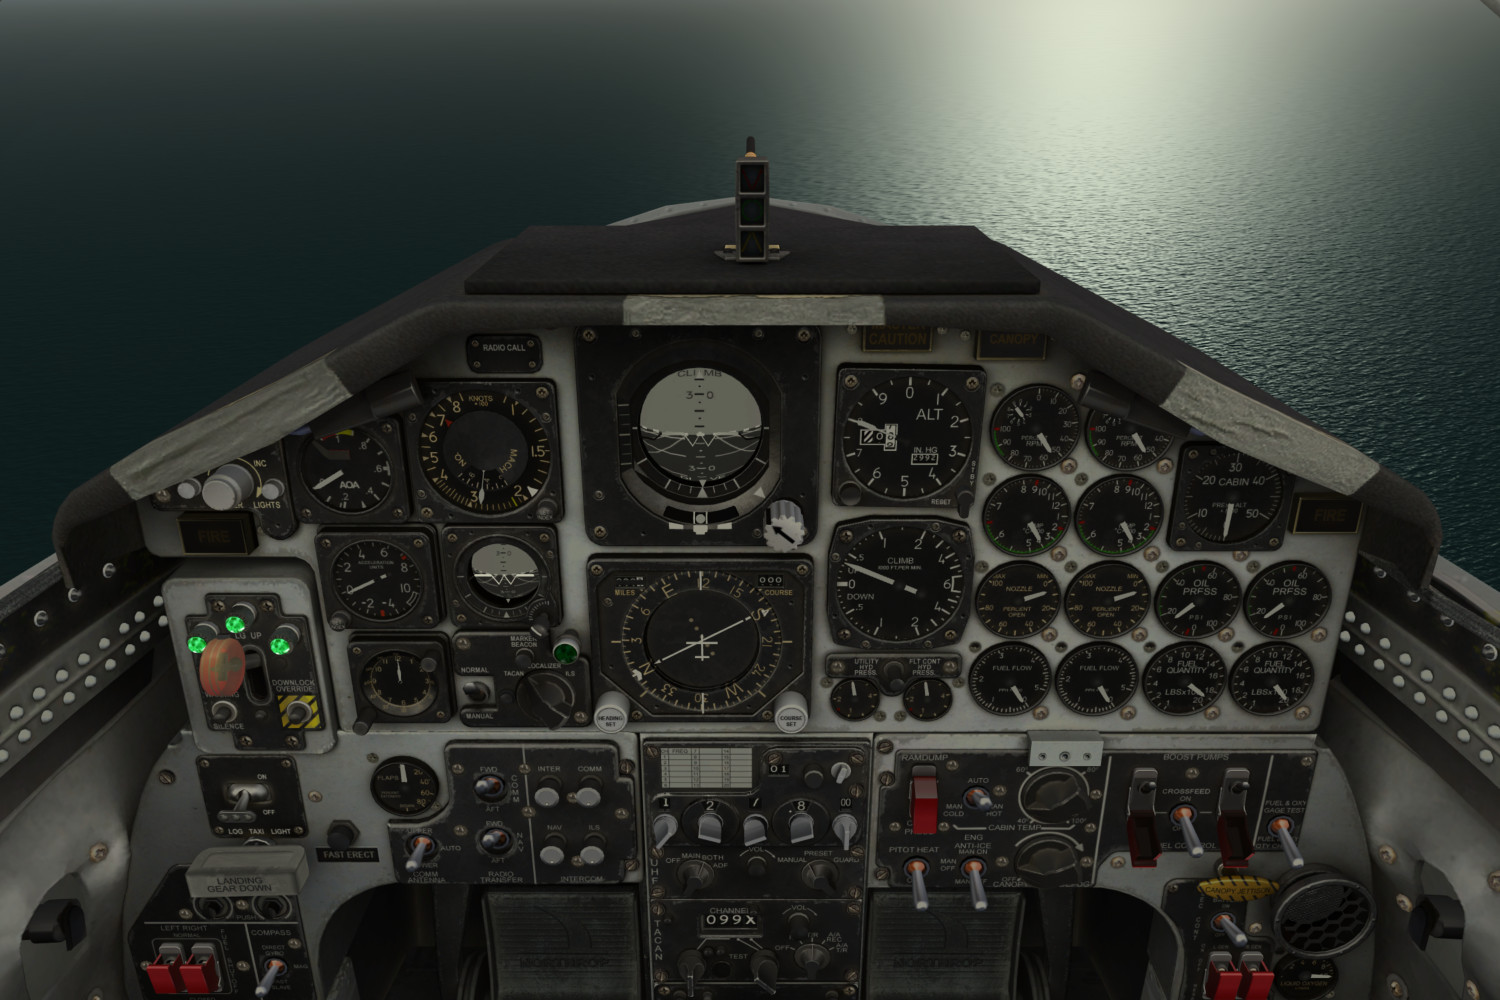 FlyInside: Virtual Reality Flight Simulation